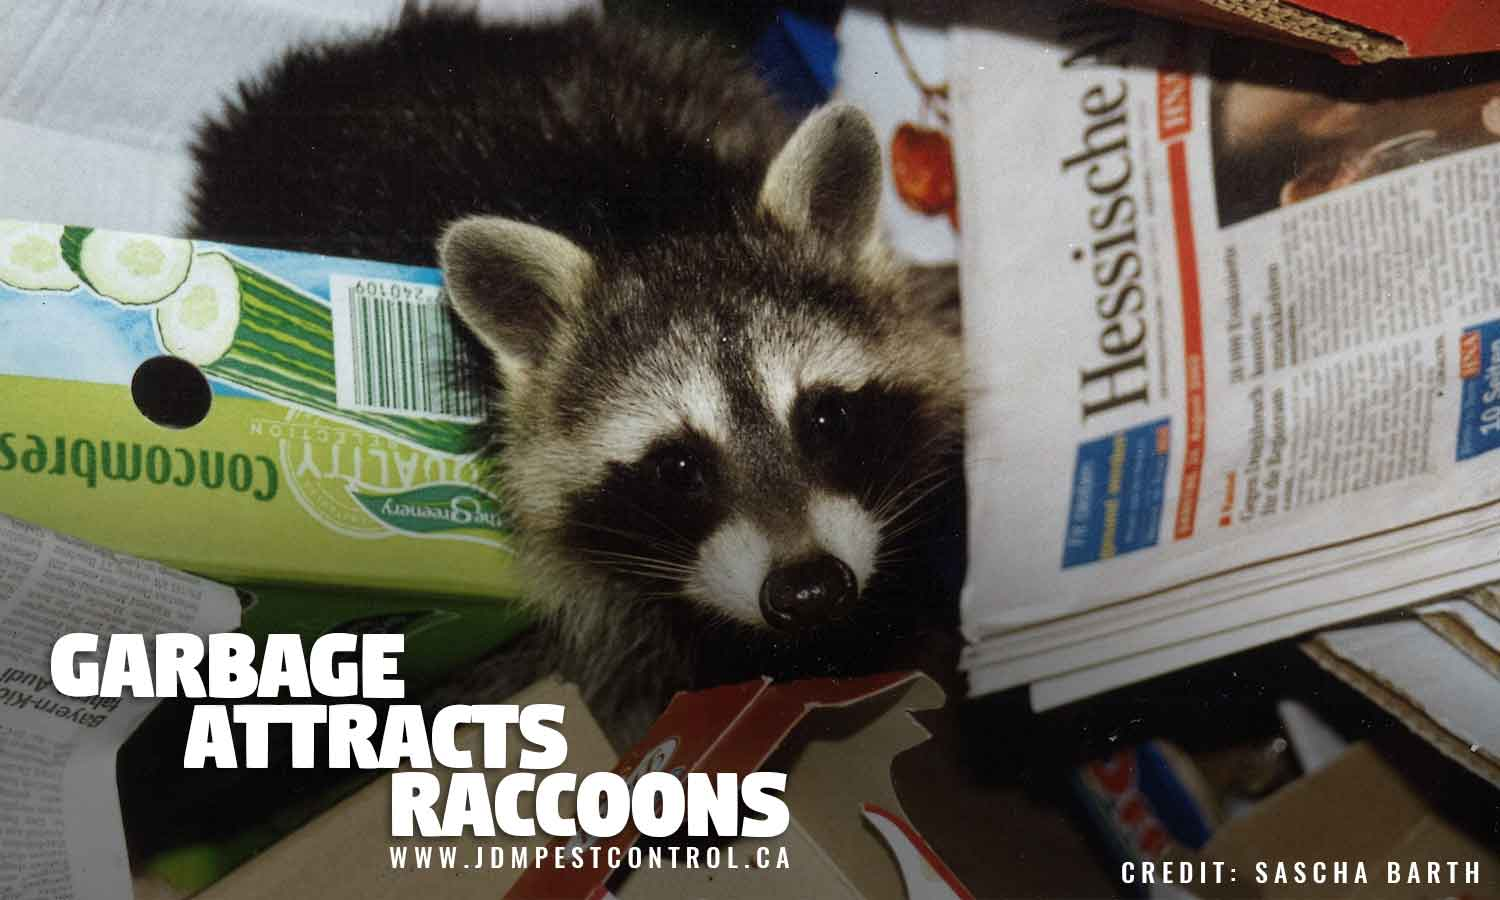 Garbage attracts raccoons